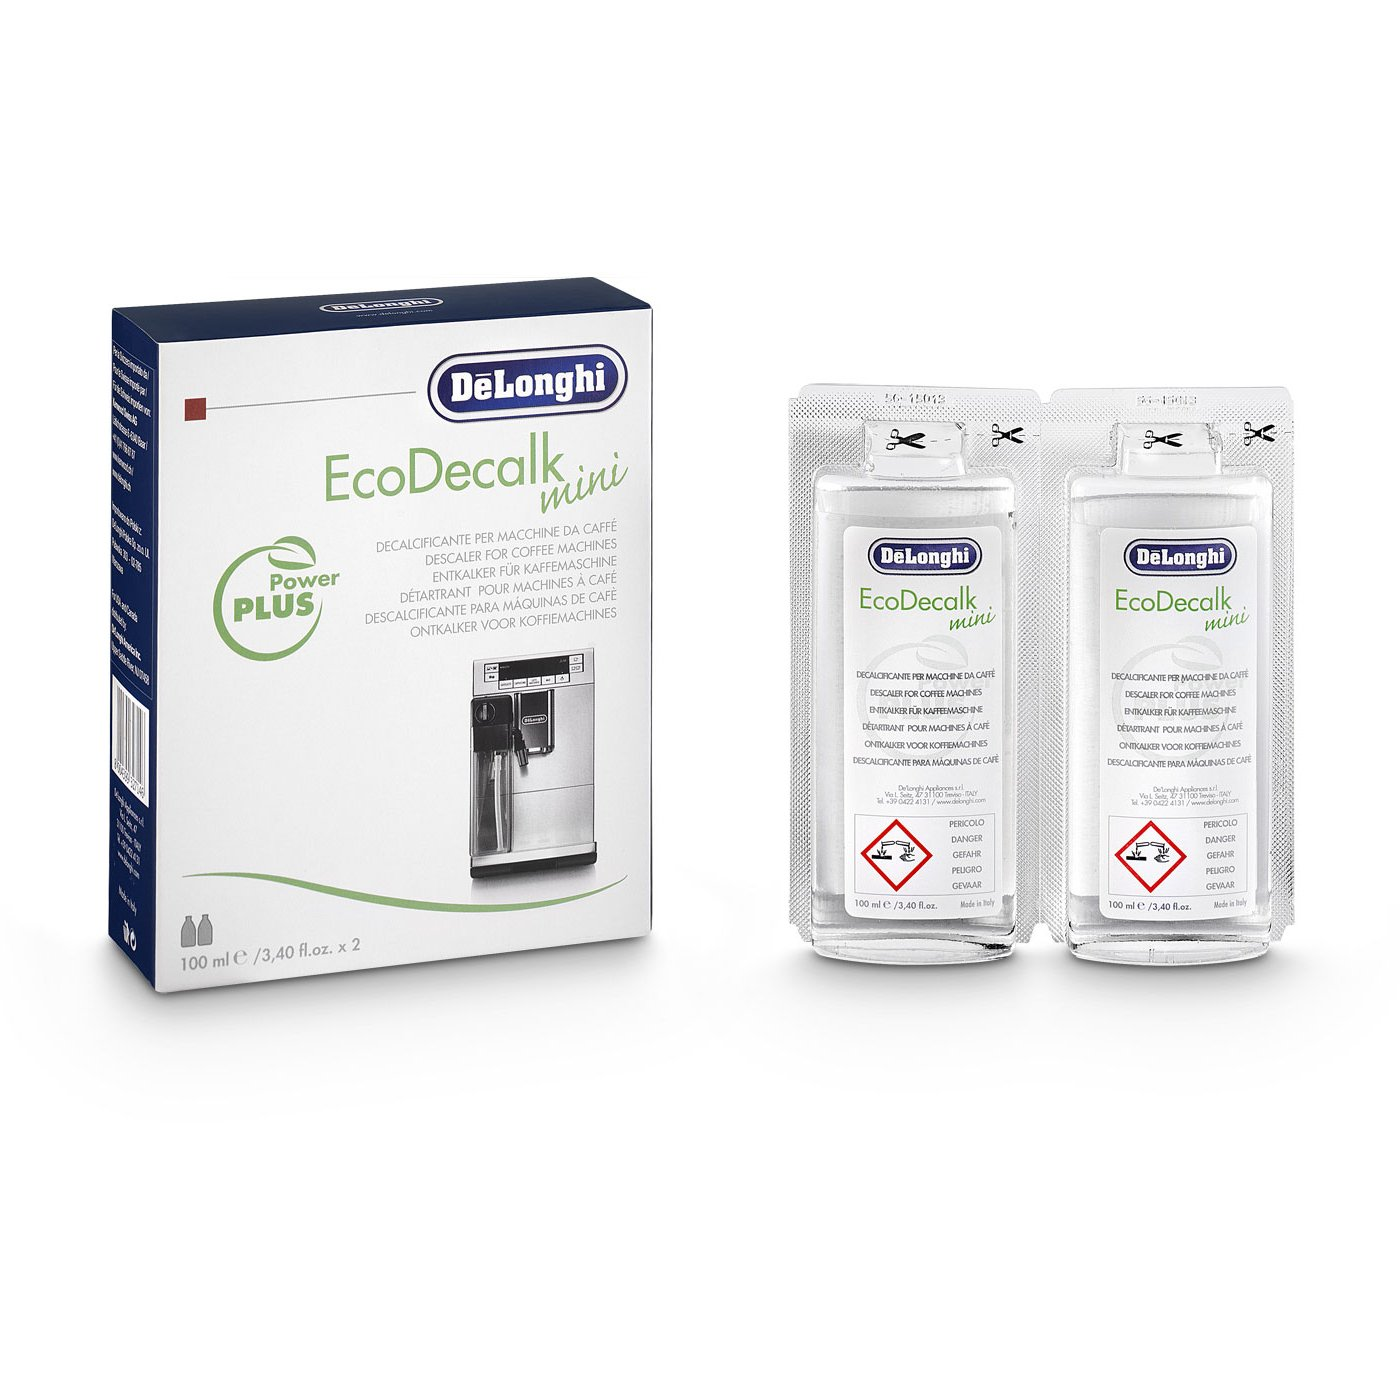 Amazon.com: DeLonghi Eco 3.4 Ounce Mini Descaler, 8 Count: Kitchen & Dining